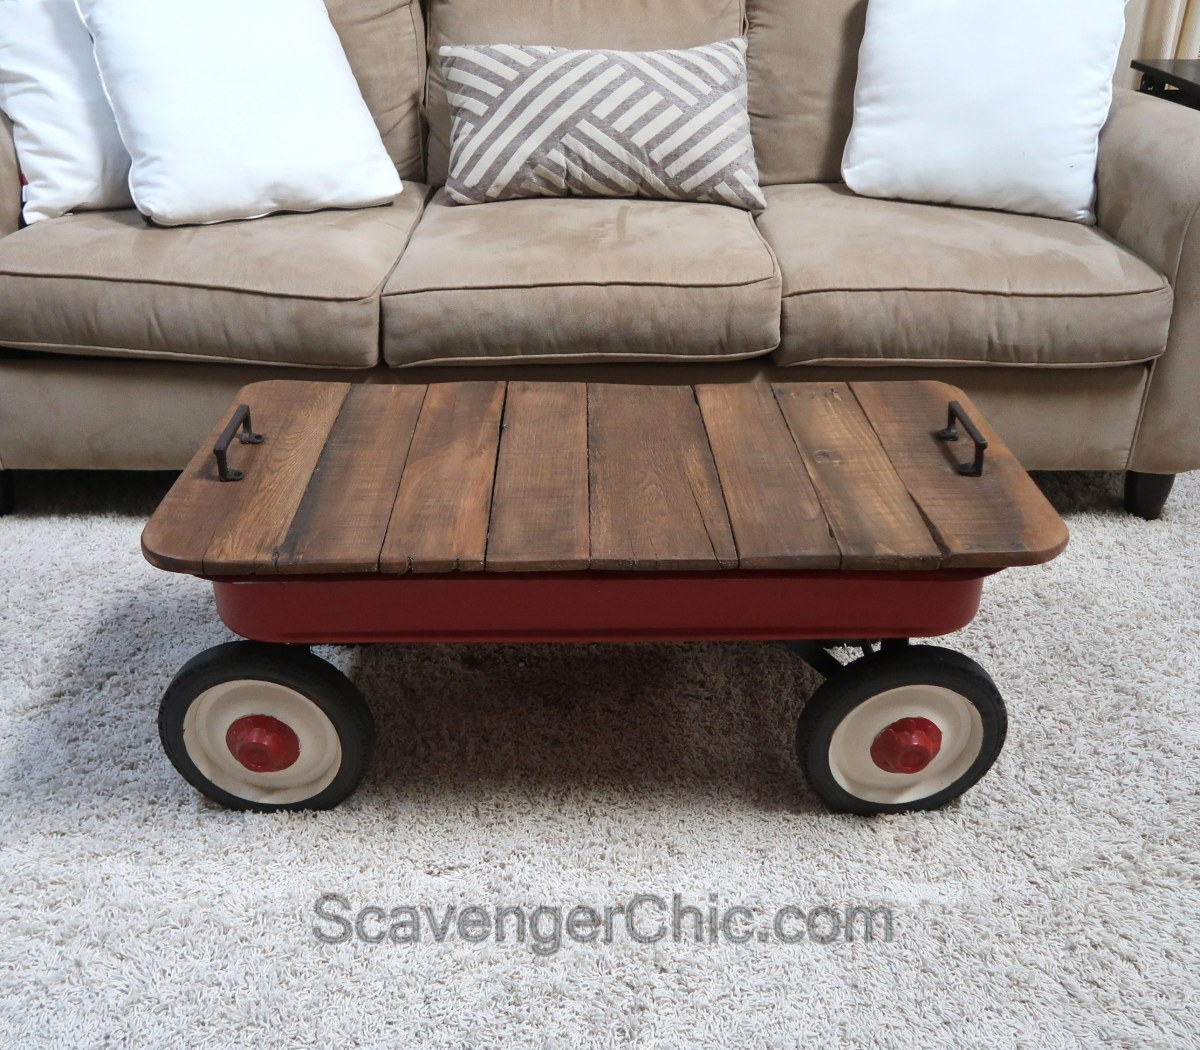 Little Red Wagon Coffee Table Scavenger Chic